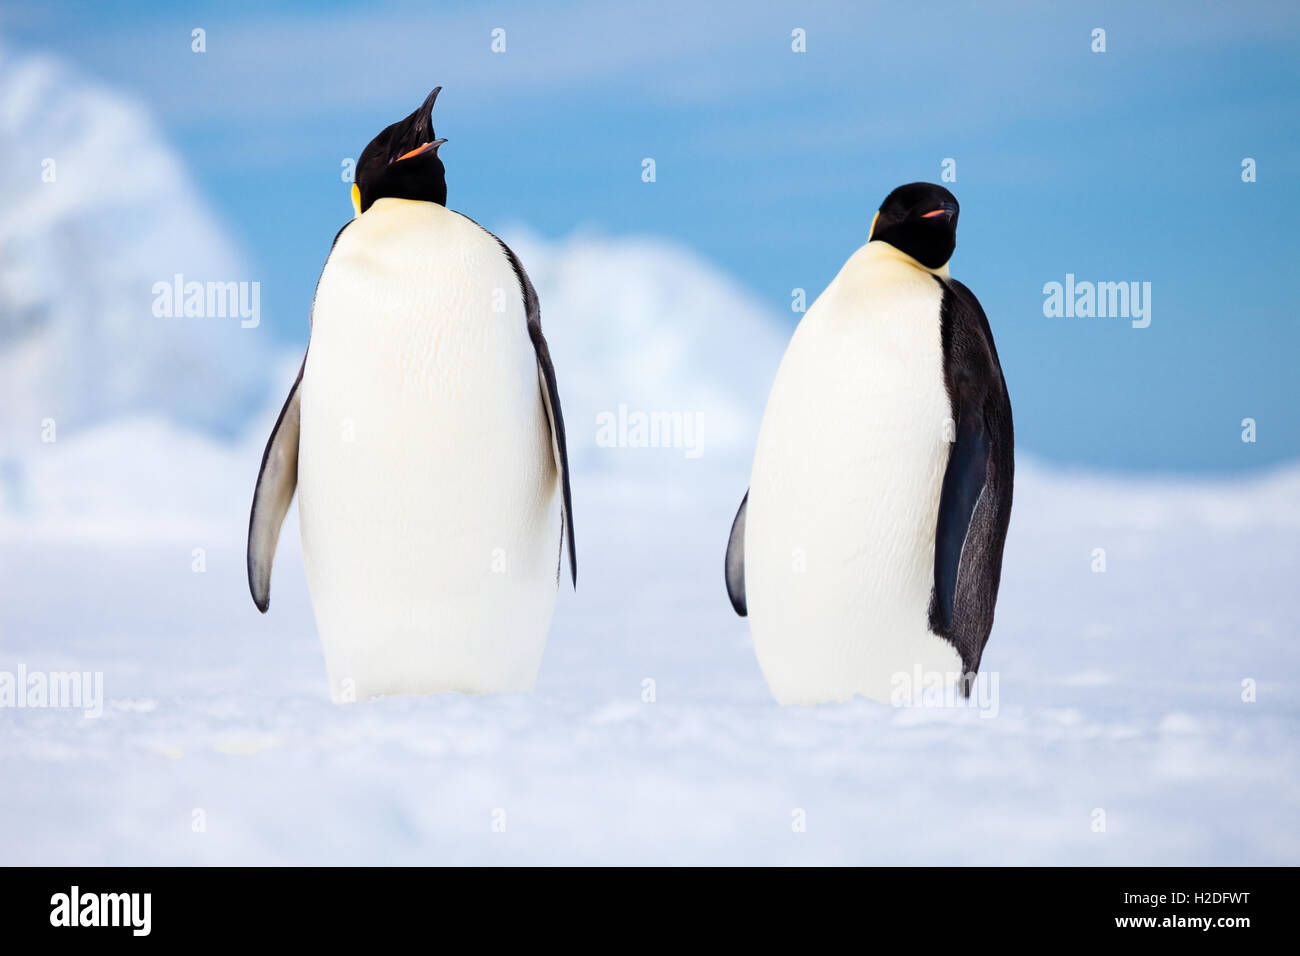 Two emperor penguins hanging out on an ice shelf, coastal Antarctica - Stock Image